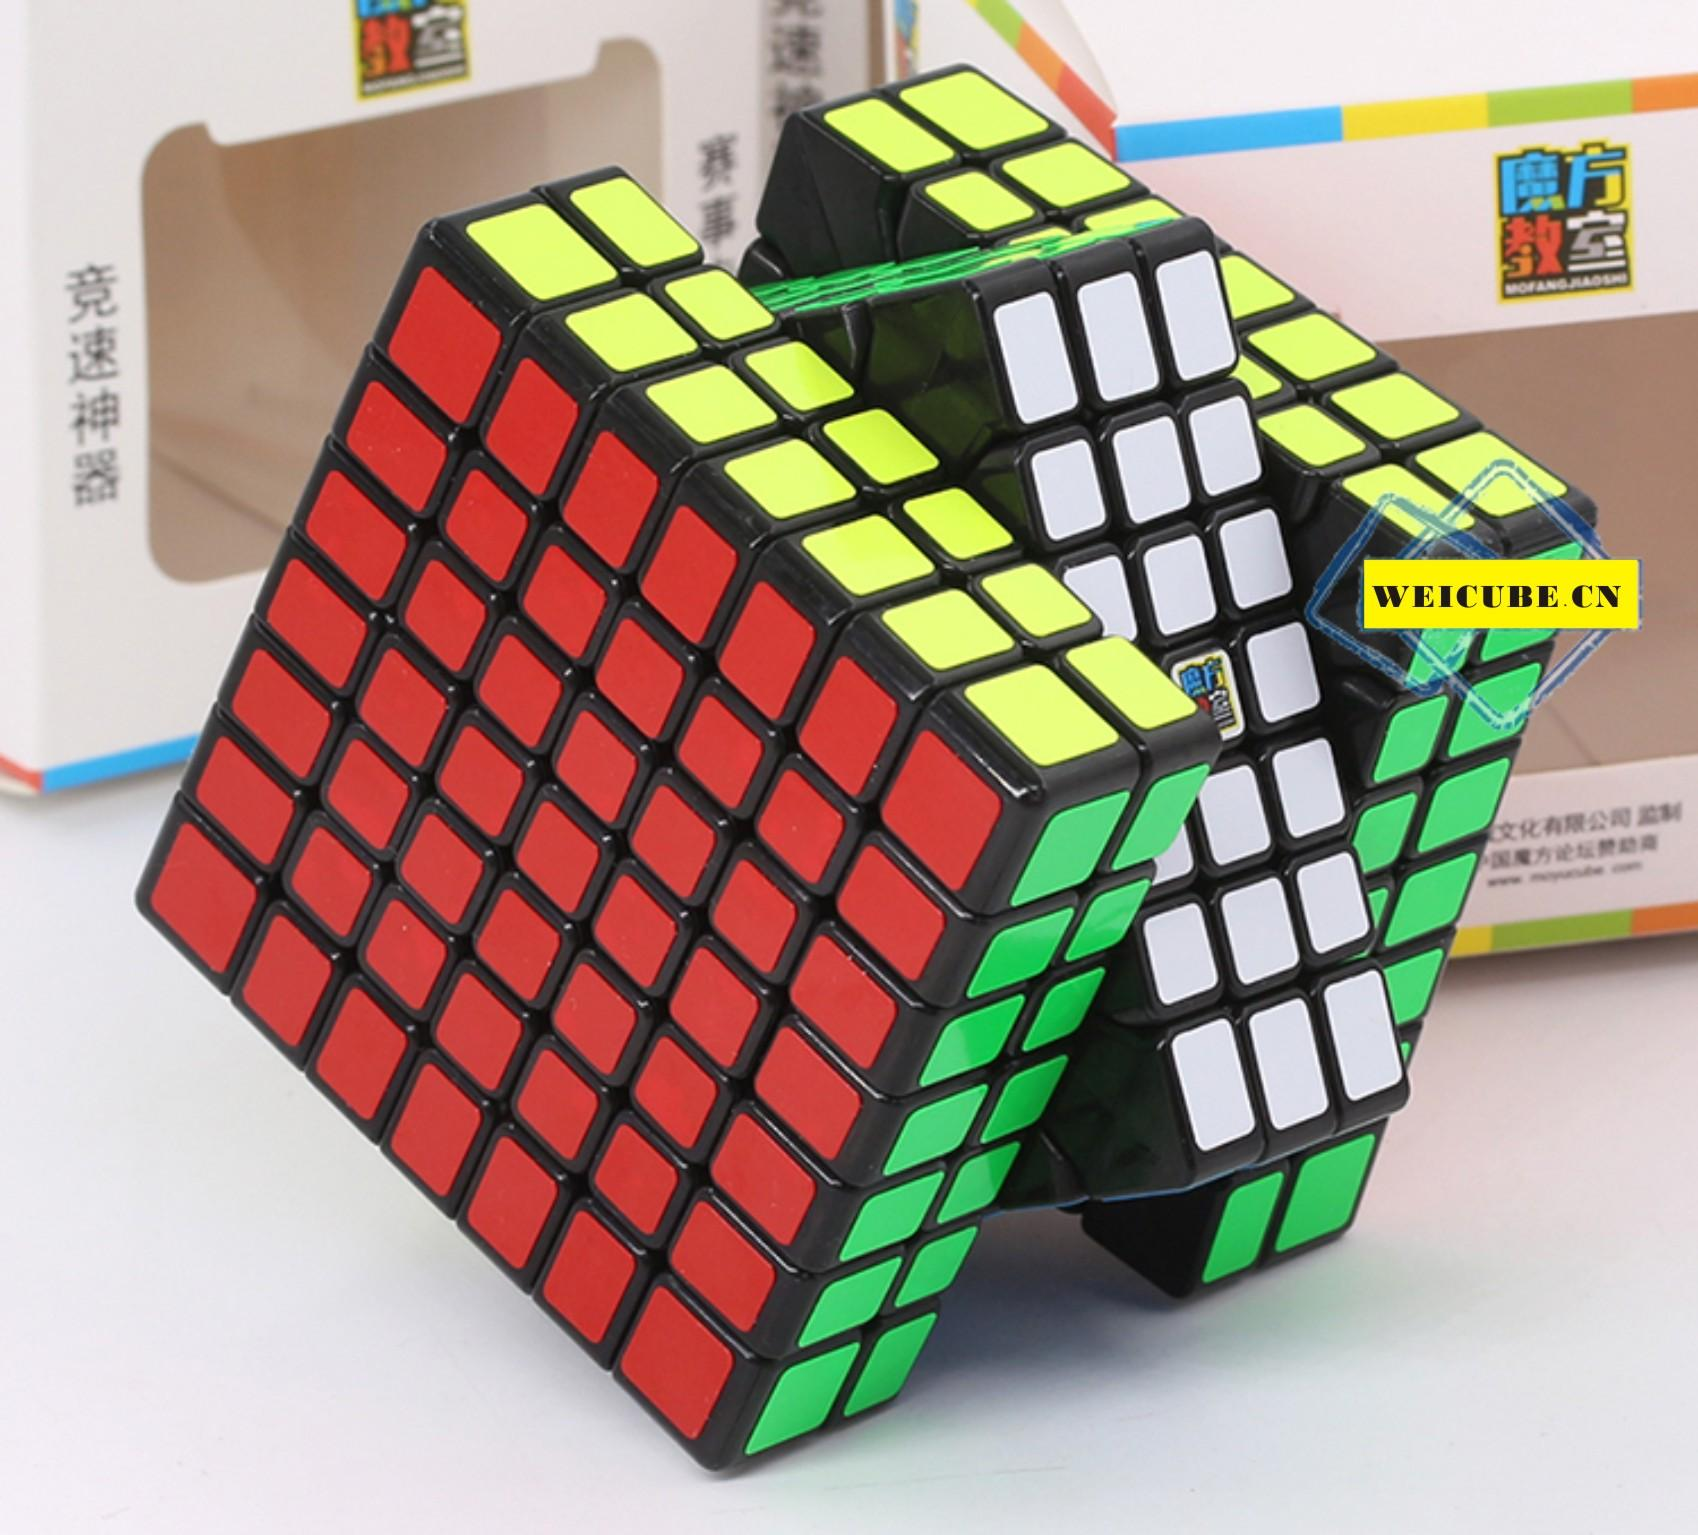 Mfjs Magic Cubes 4x4 5x5 6x6 7x7 Speed Twist Puzzle Pvc Rubik Mofang Jiaoshi Mf4s Stickerless 4pcs Cube Collection Free Shipping